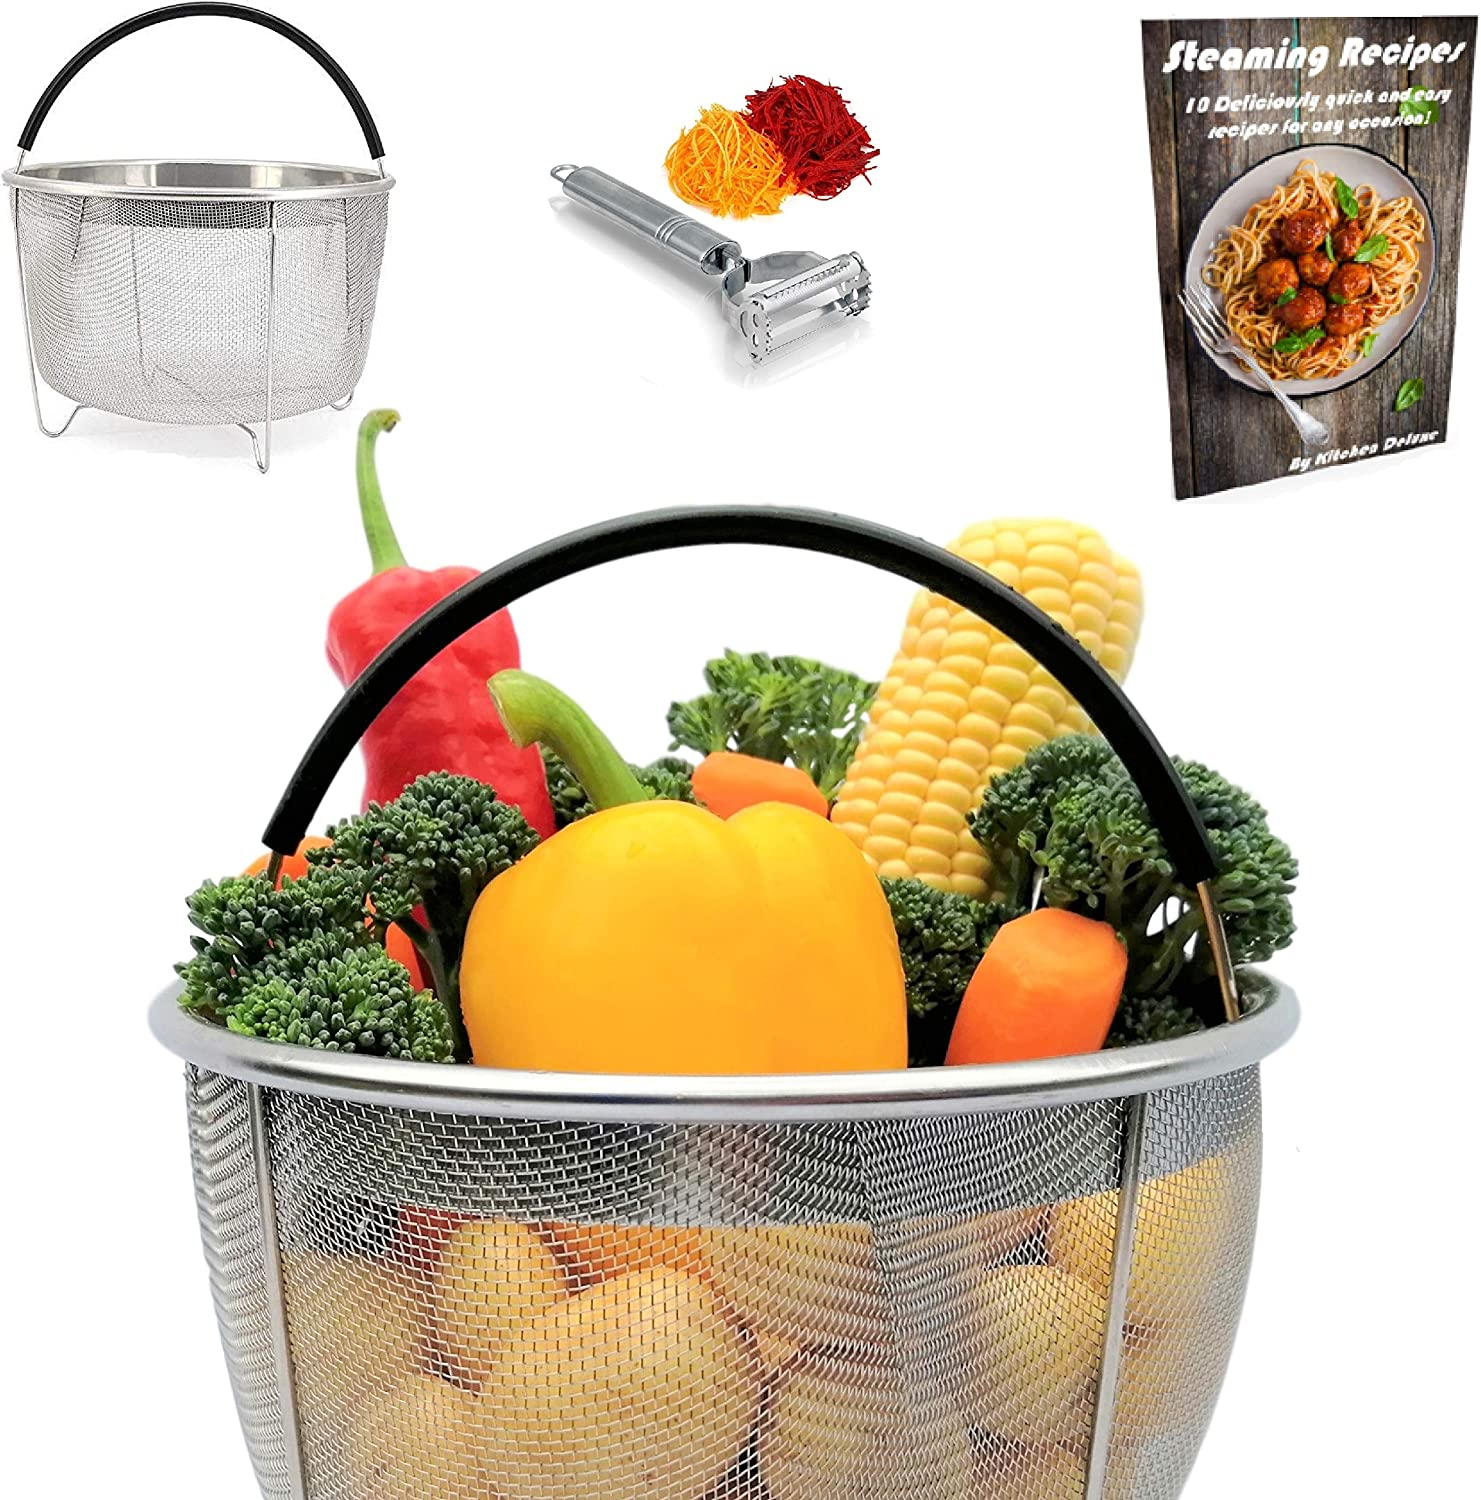 Kitchen Deluxe Vegetable Steamer Basket - Fits Instant Pot Pressure Cooker 6 Qt & 8 Quart - 100% Stainless Steel - Accessories Include Safety Tool + Julienne Peeler + eBook - For Instapot